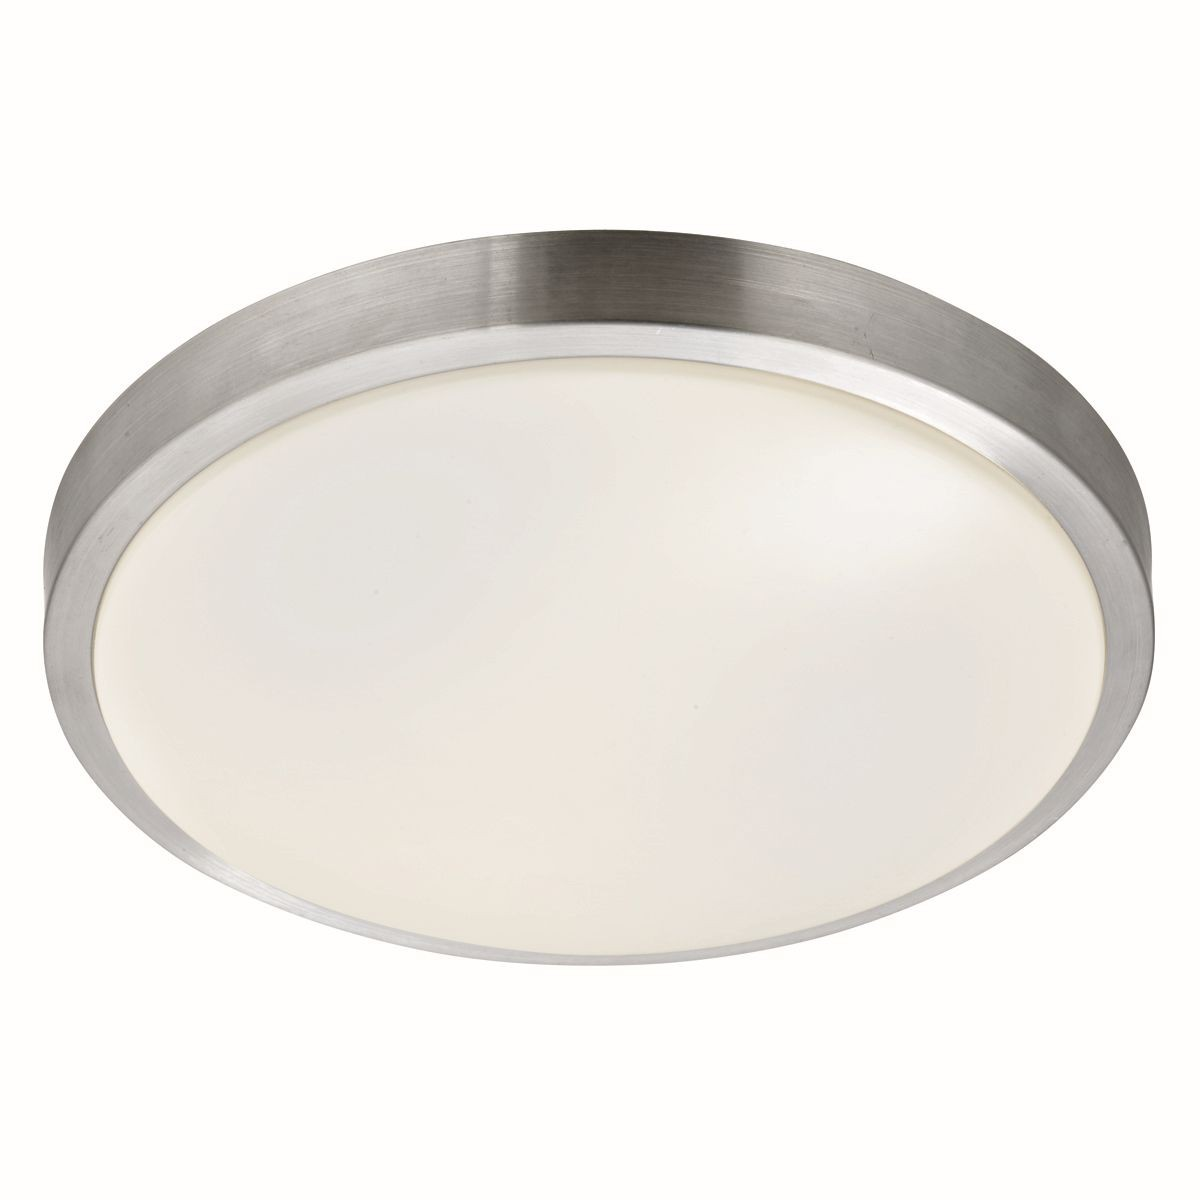 Bathroom Ip44 Flush Ceiling Light Aluminium